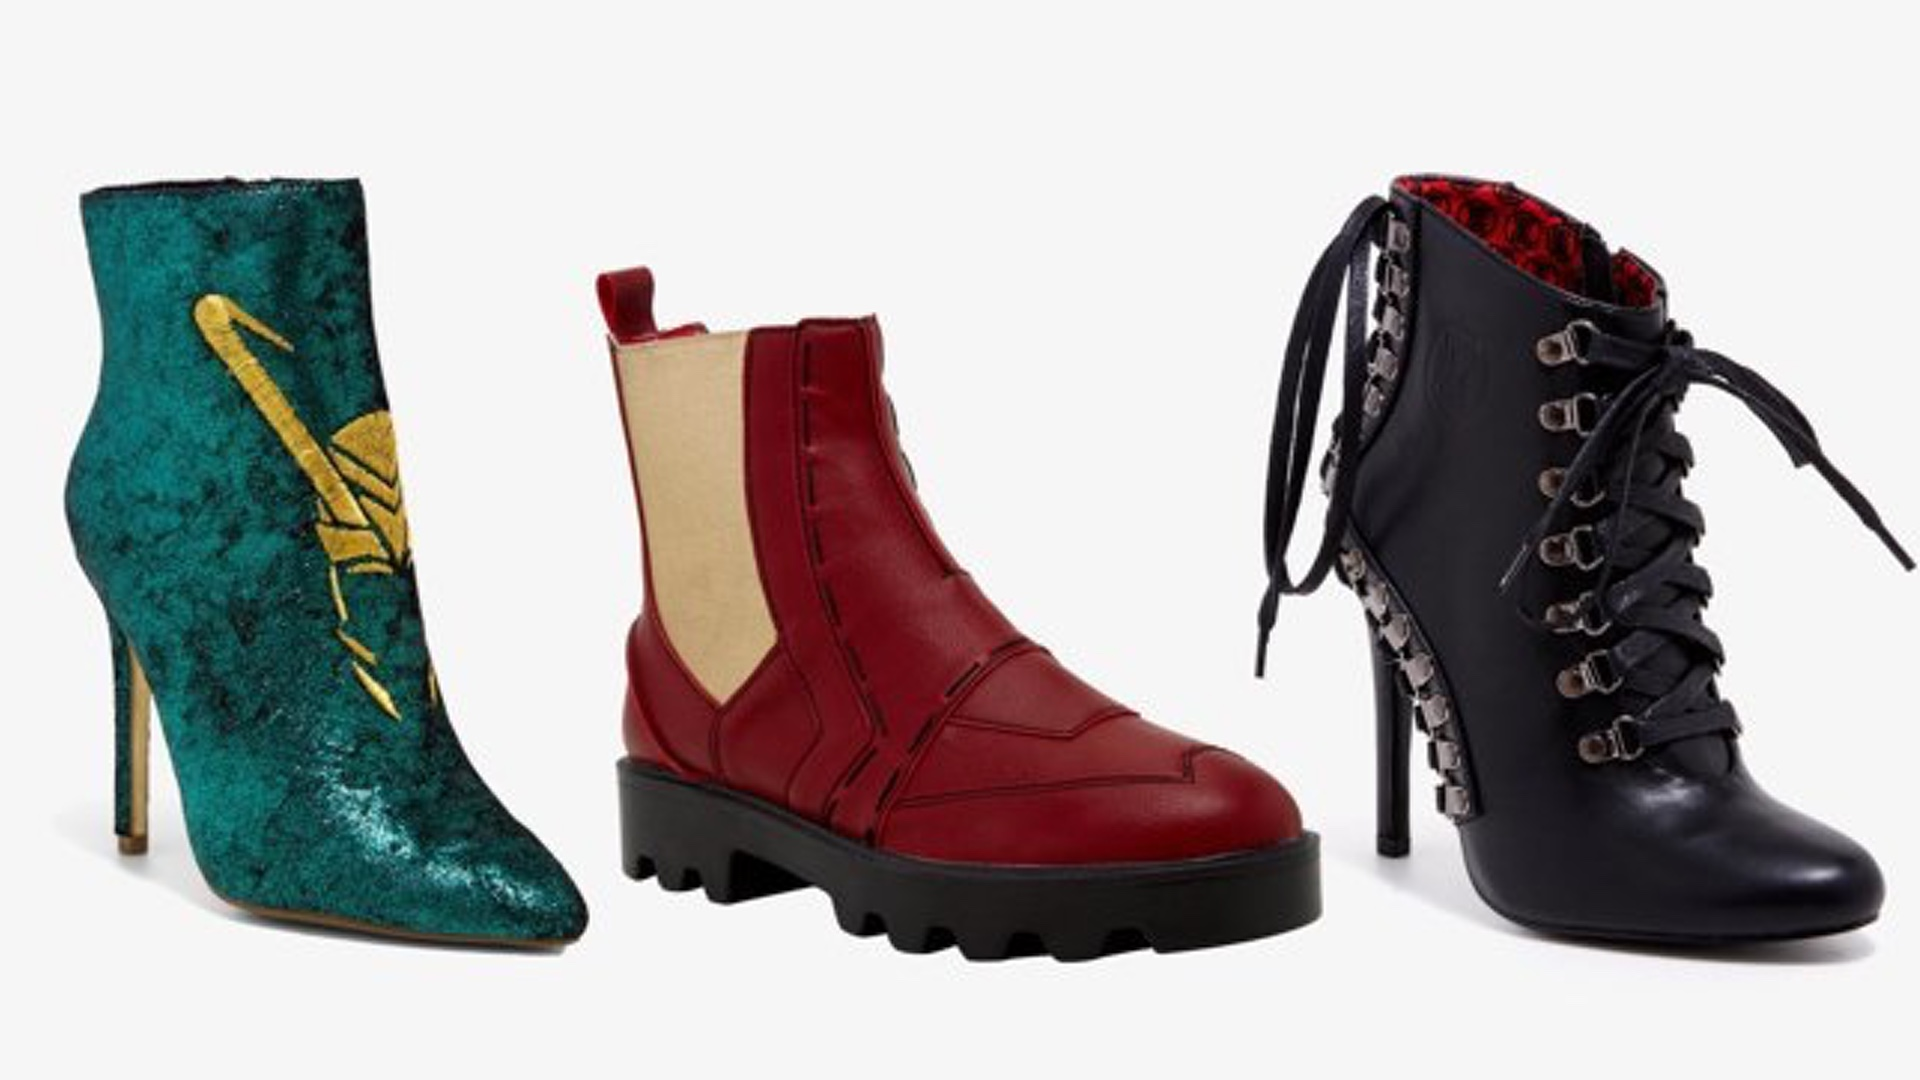 marvels-avengers-womens-boot-collection-available-at-hot-topic-social.jpg